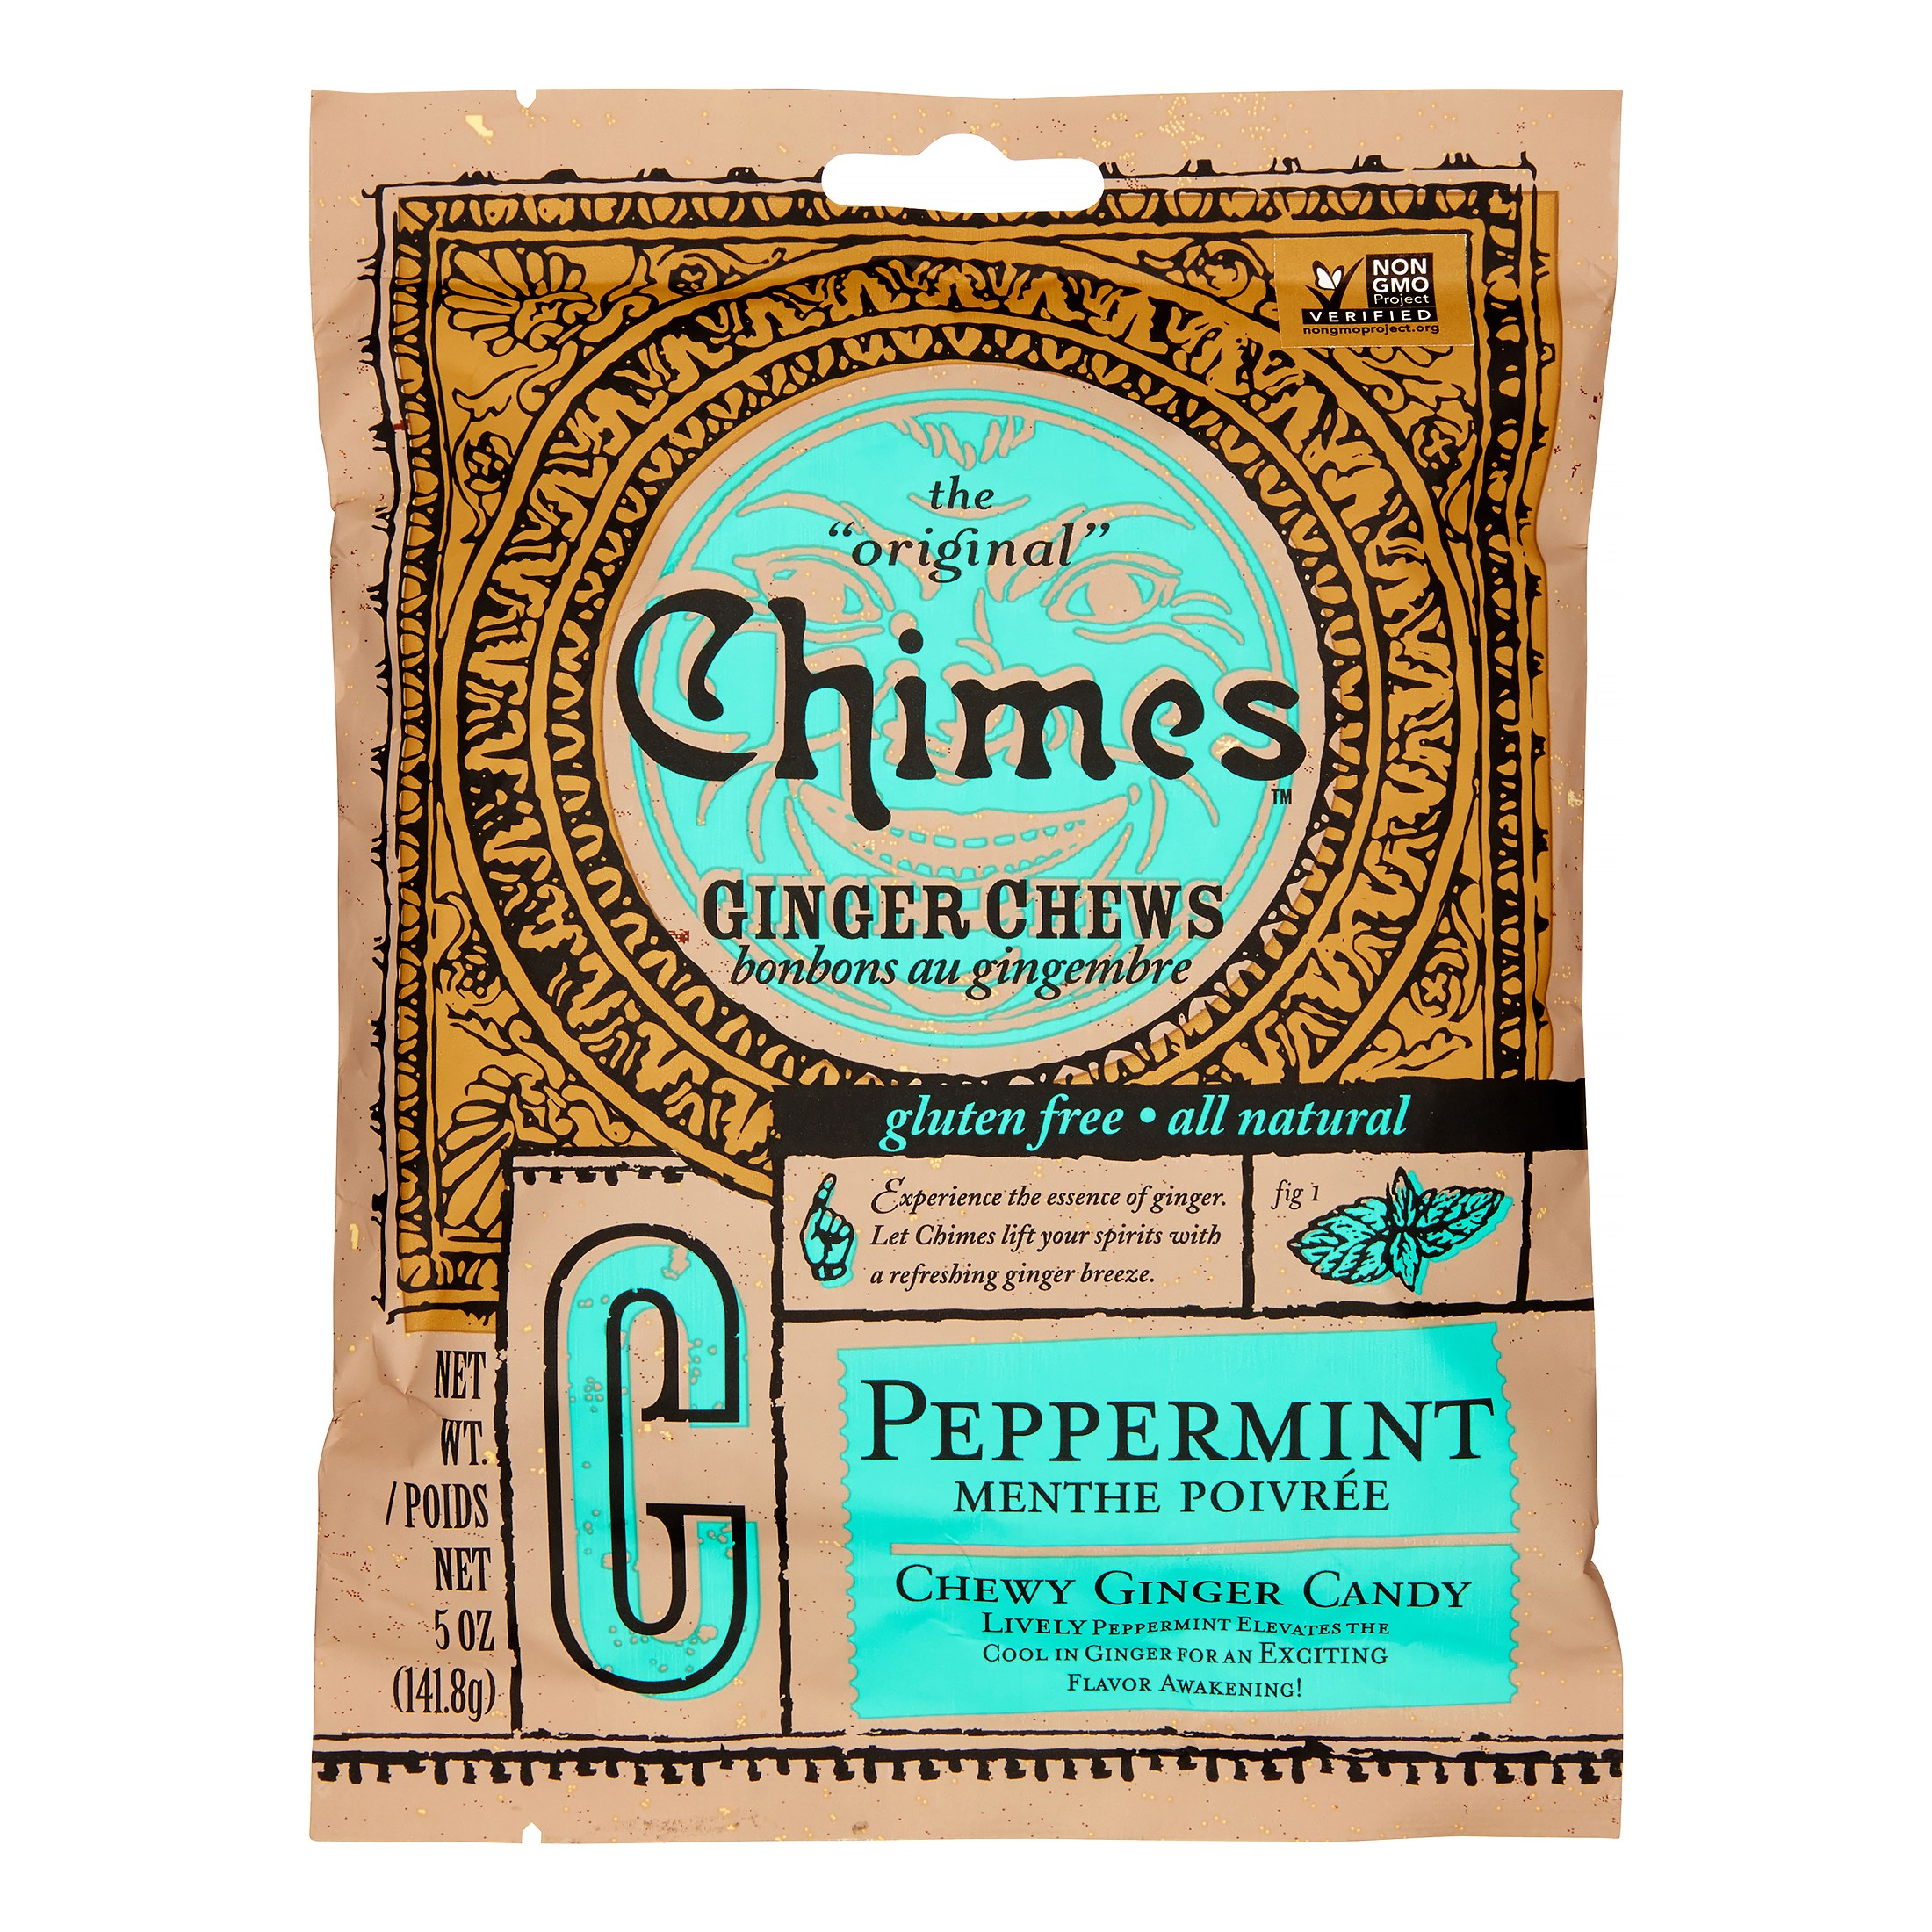 Chimes ginger chews, peppermint, 5 oz